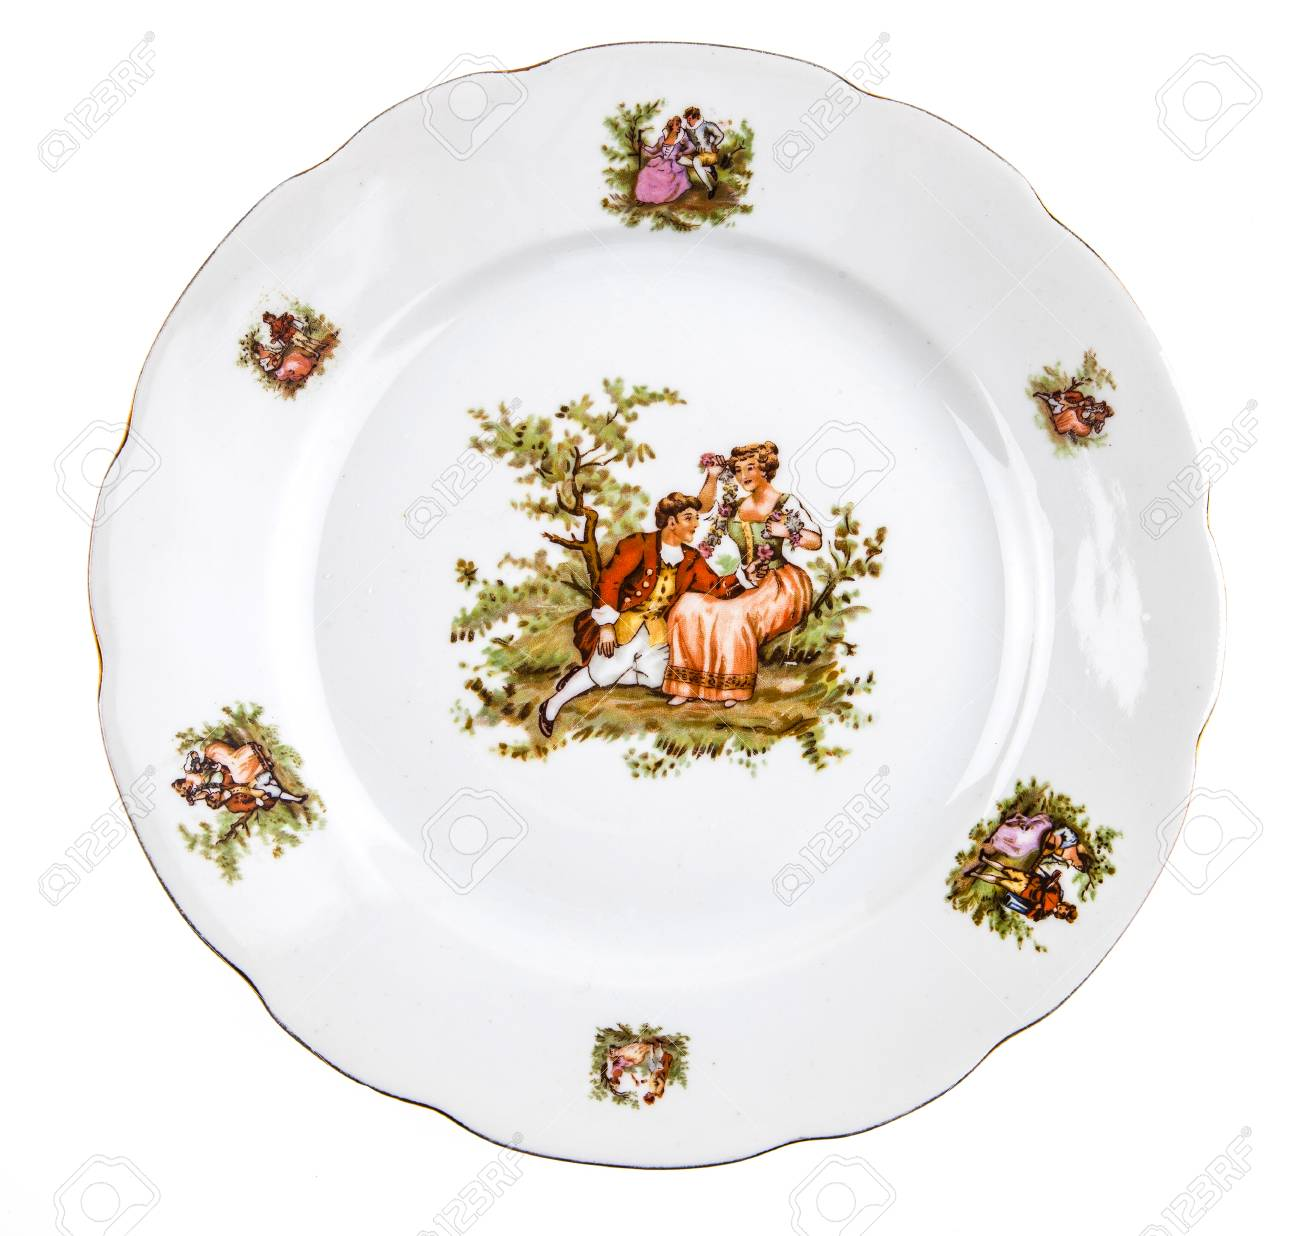 Rustic plate isolated on white Stock Photo - 55145219